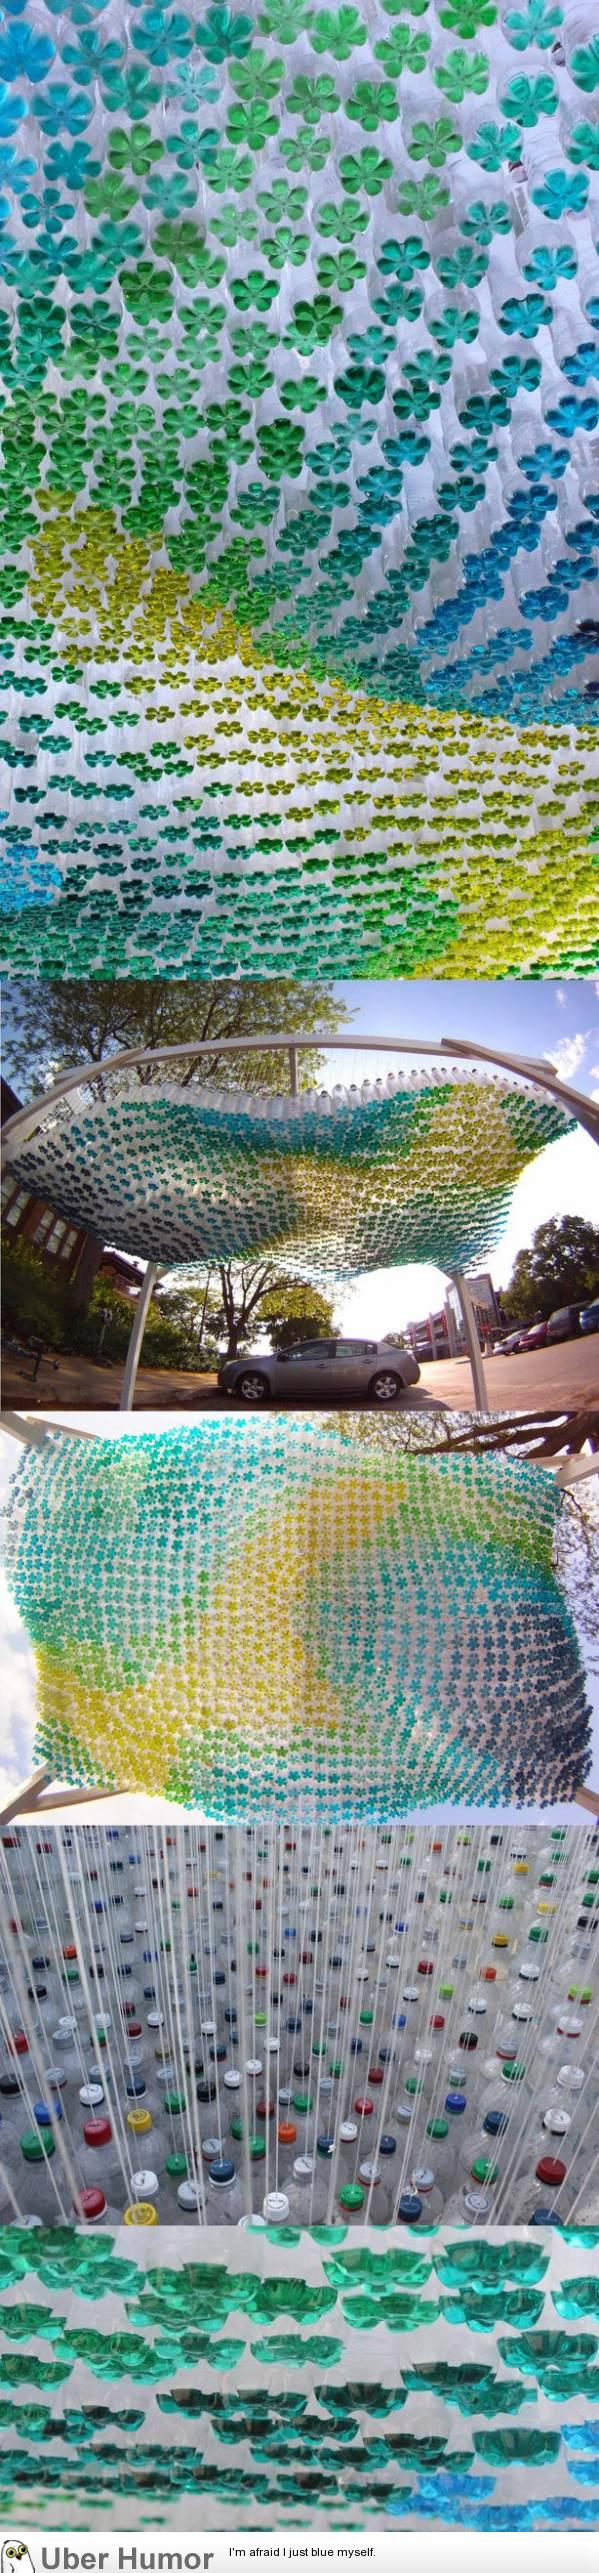 Plastic Bottle Carport : What my friends and i did with soda bottles funny